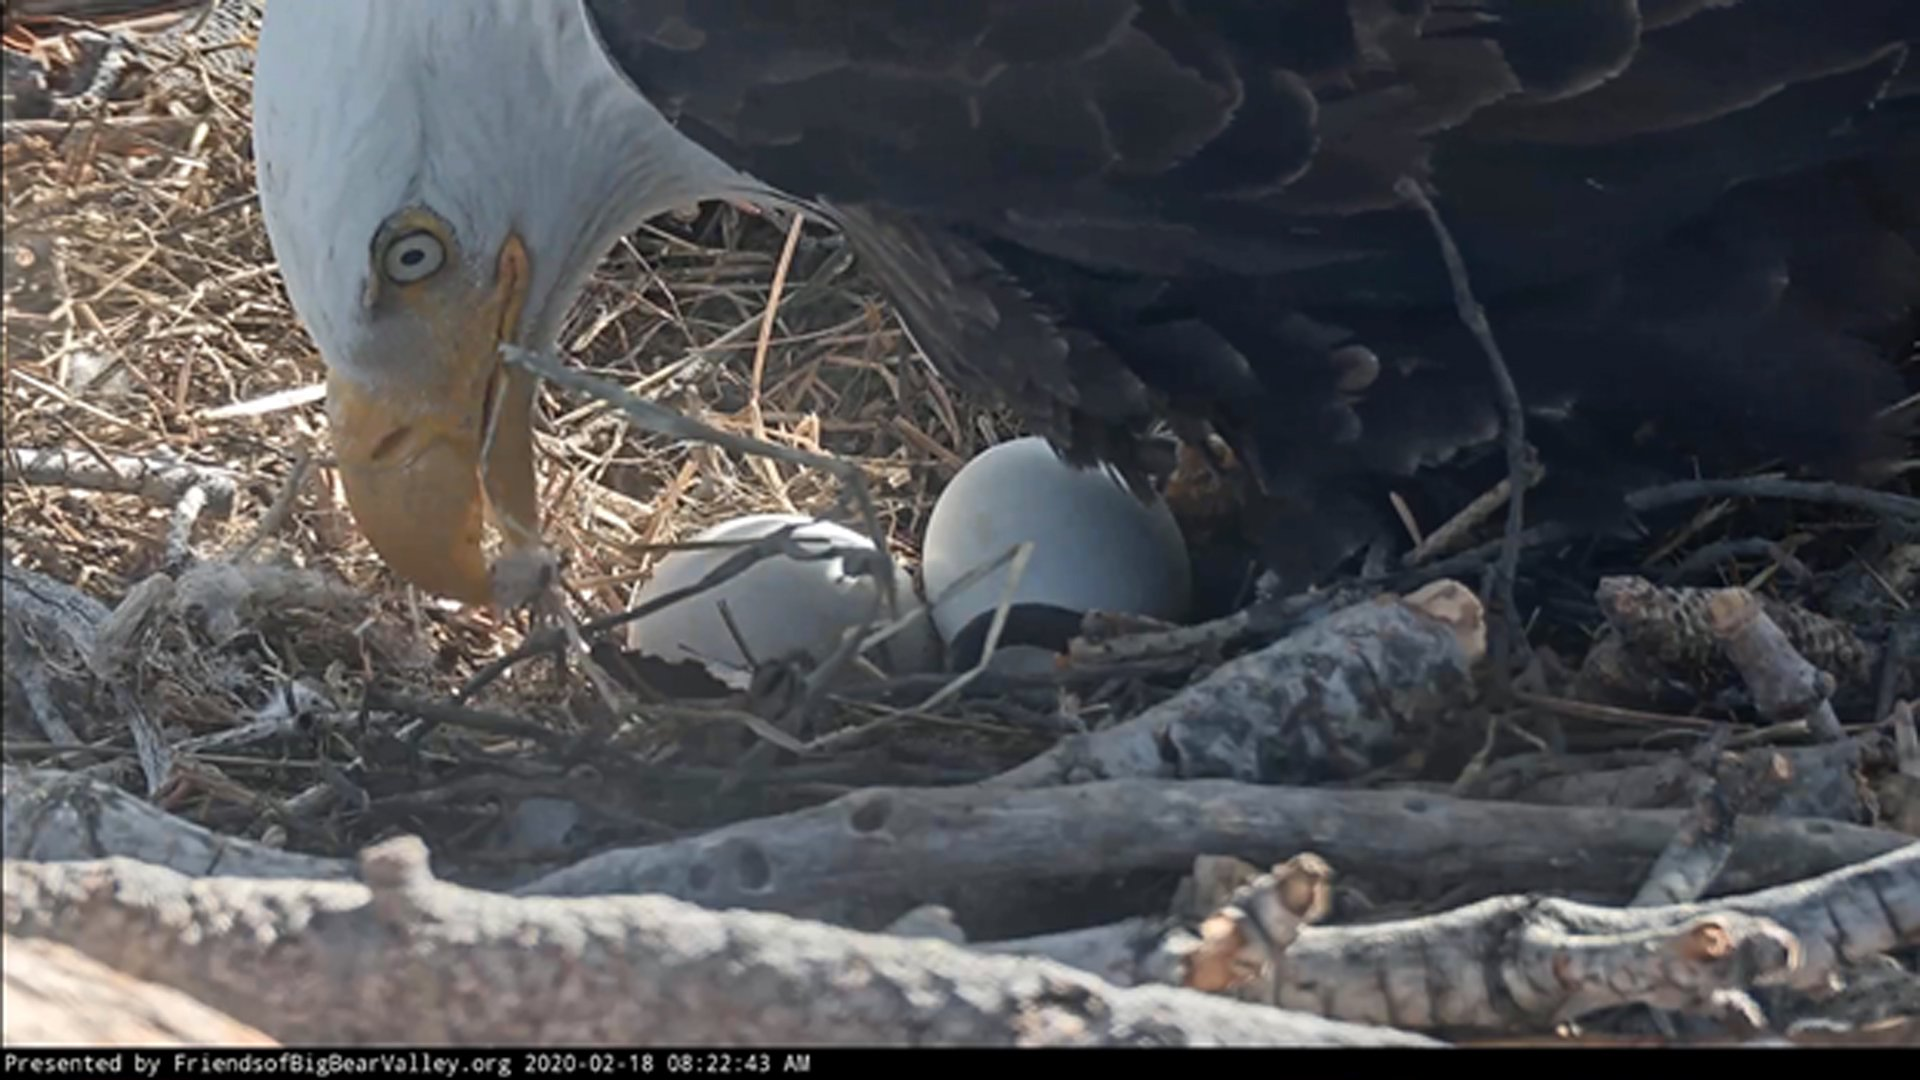 A close up of the eagle eggs is seen in an image from a camera operated by Friends of Big Bear Valley on Feb. 18, 2020.